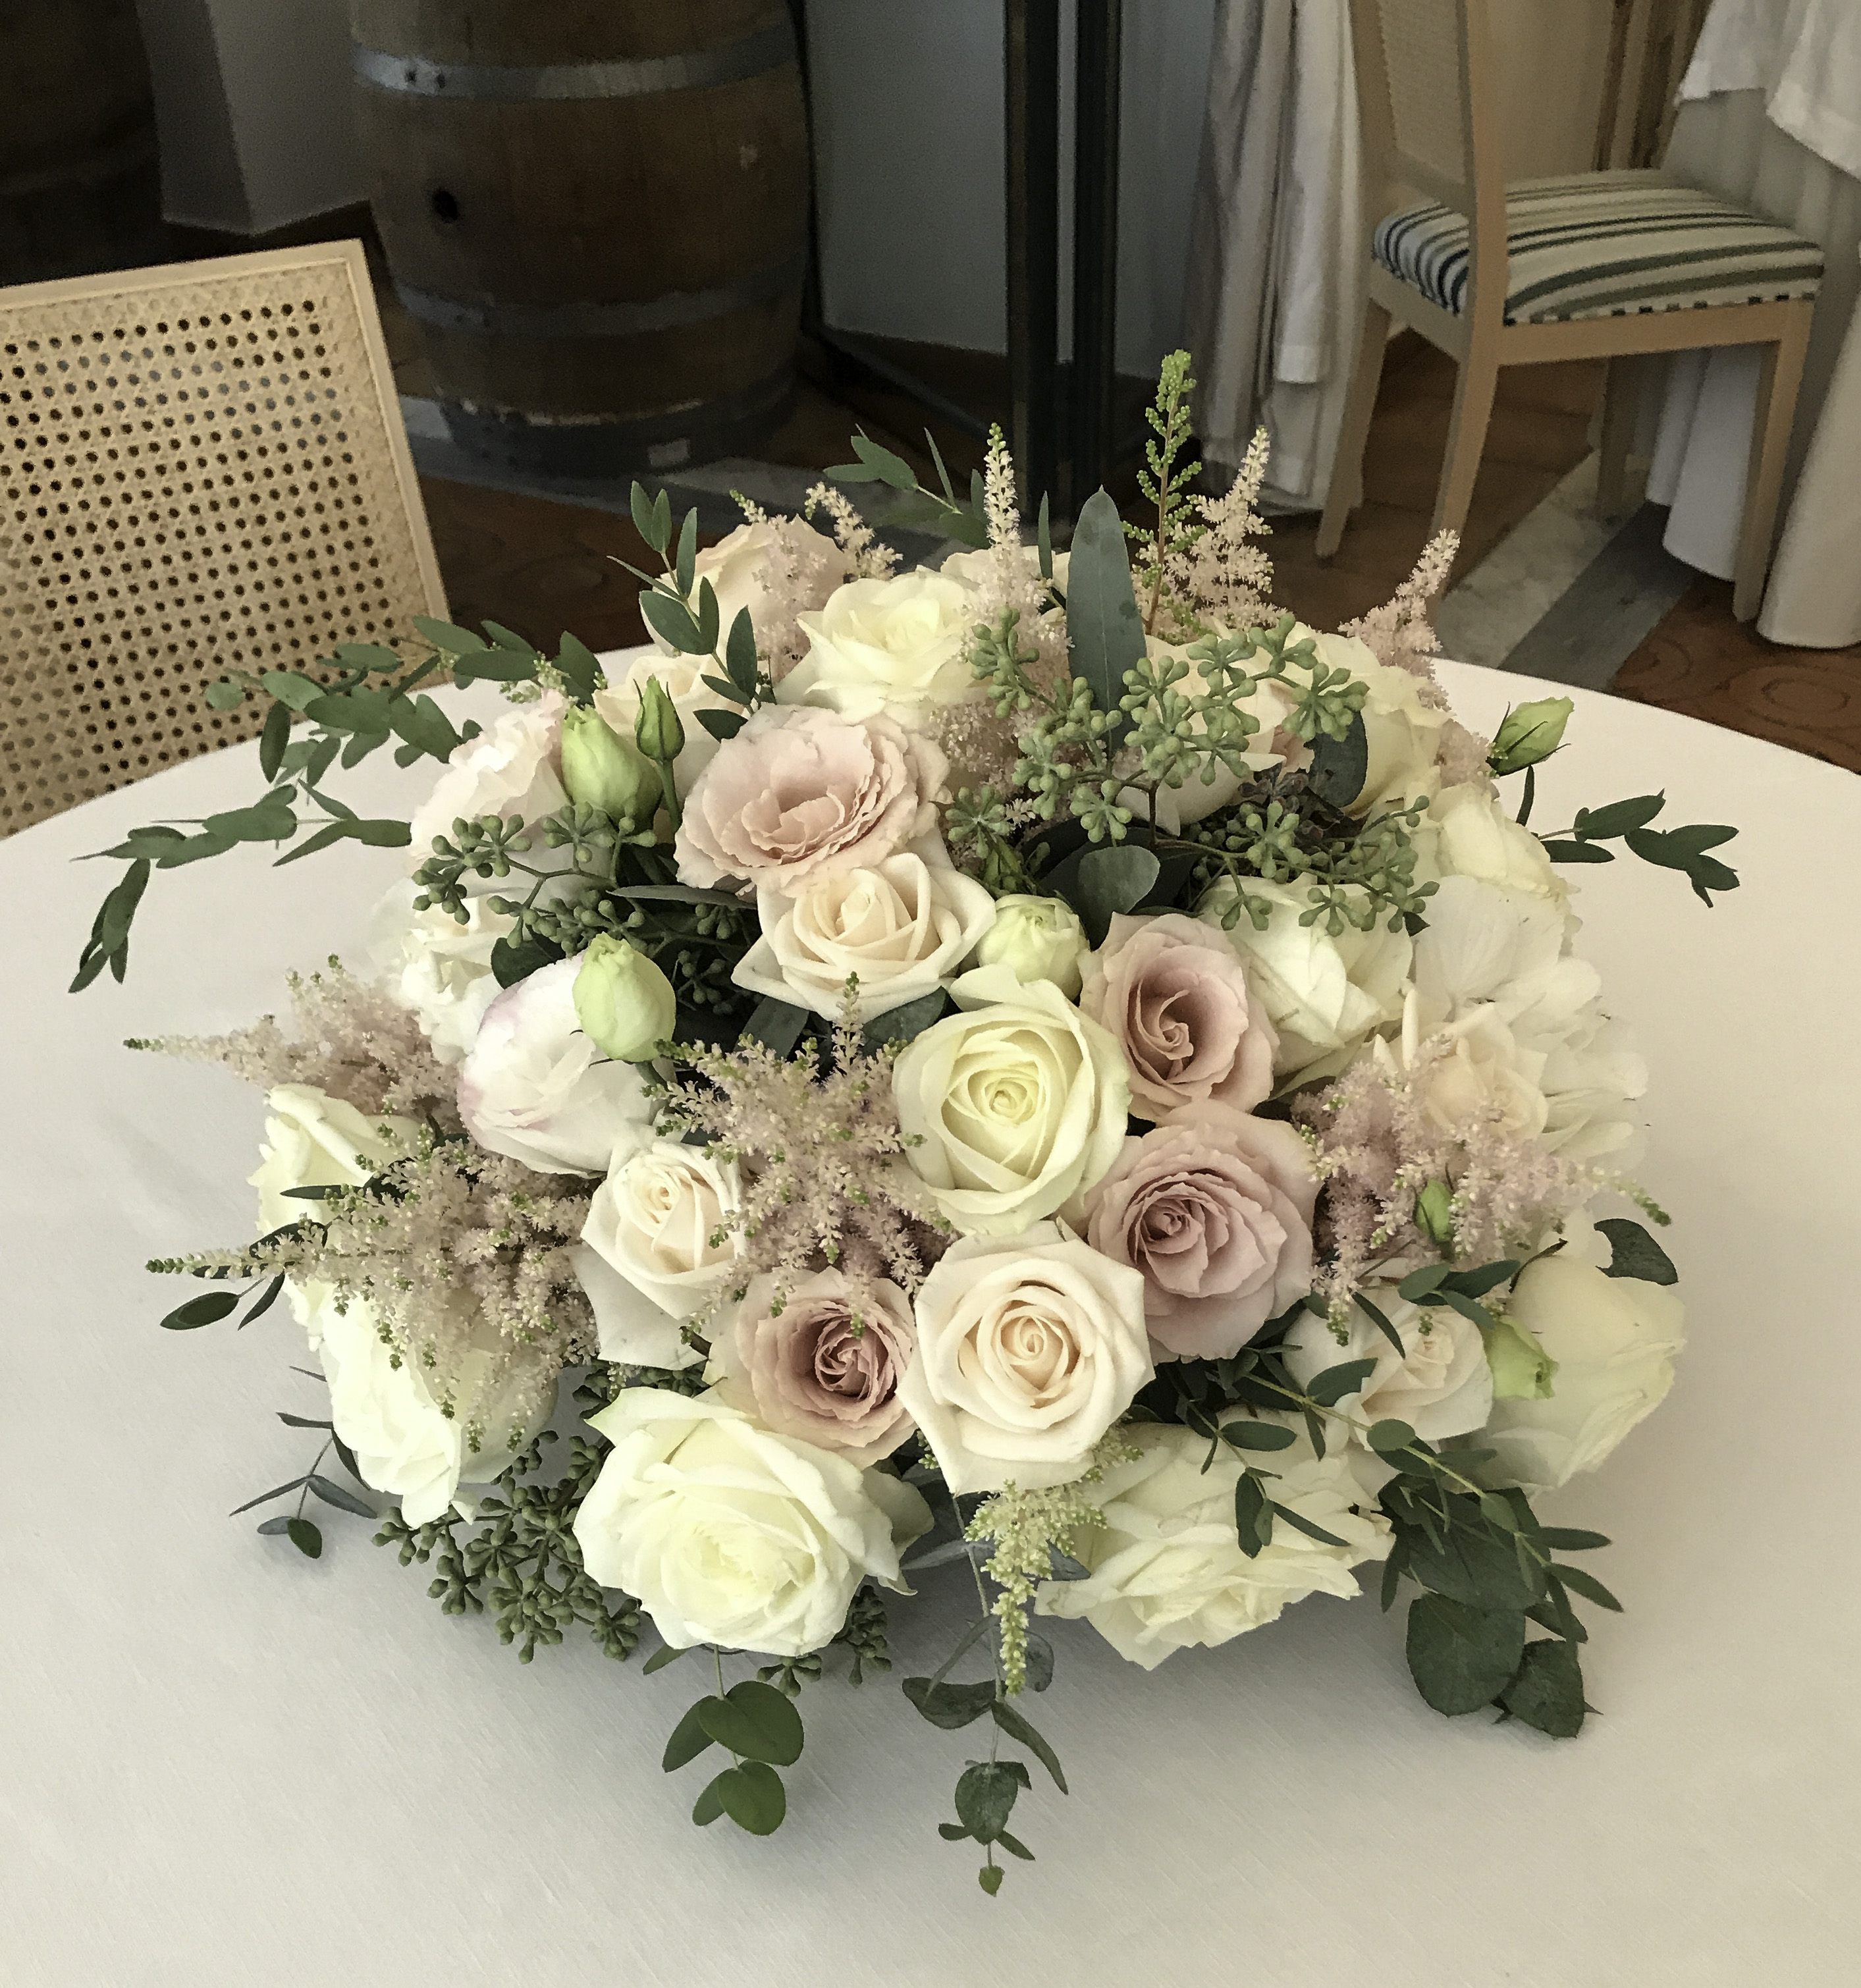 Large Rose Centerpiece fro Round Table